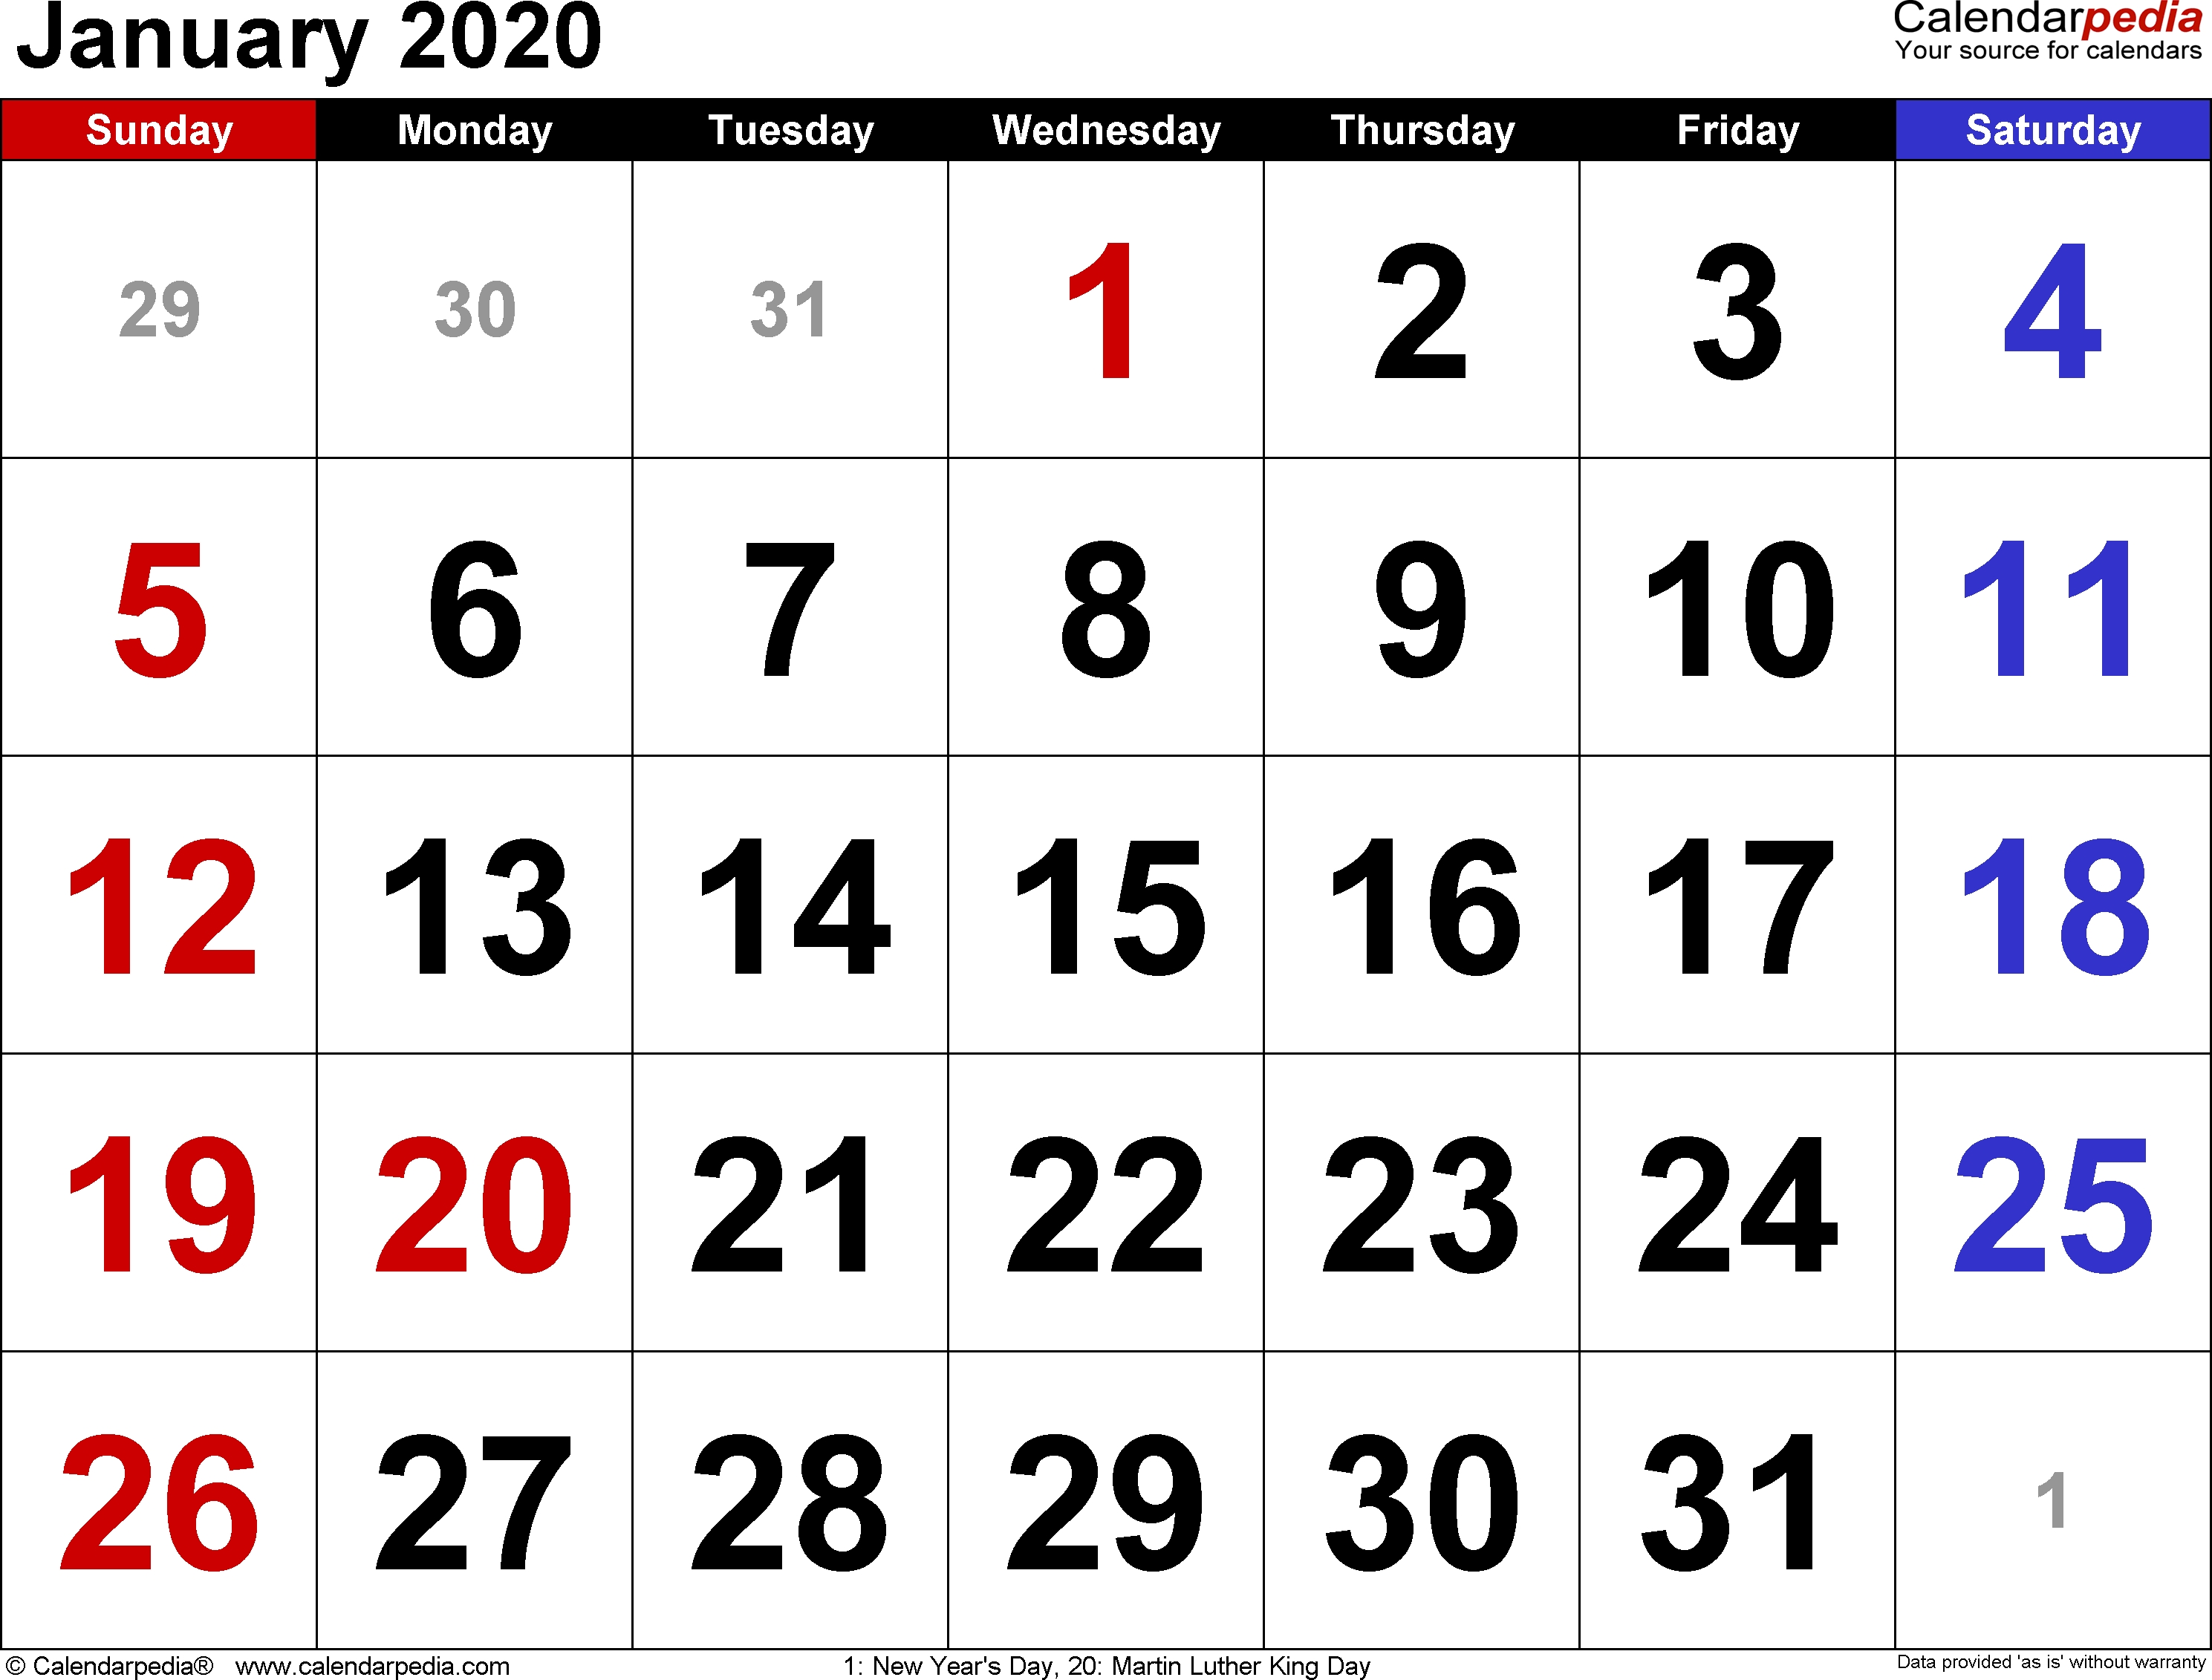 January 2020 Calendars For Word, Excel & Pdf-January 2020 Calendar In Excel